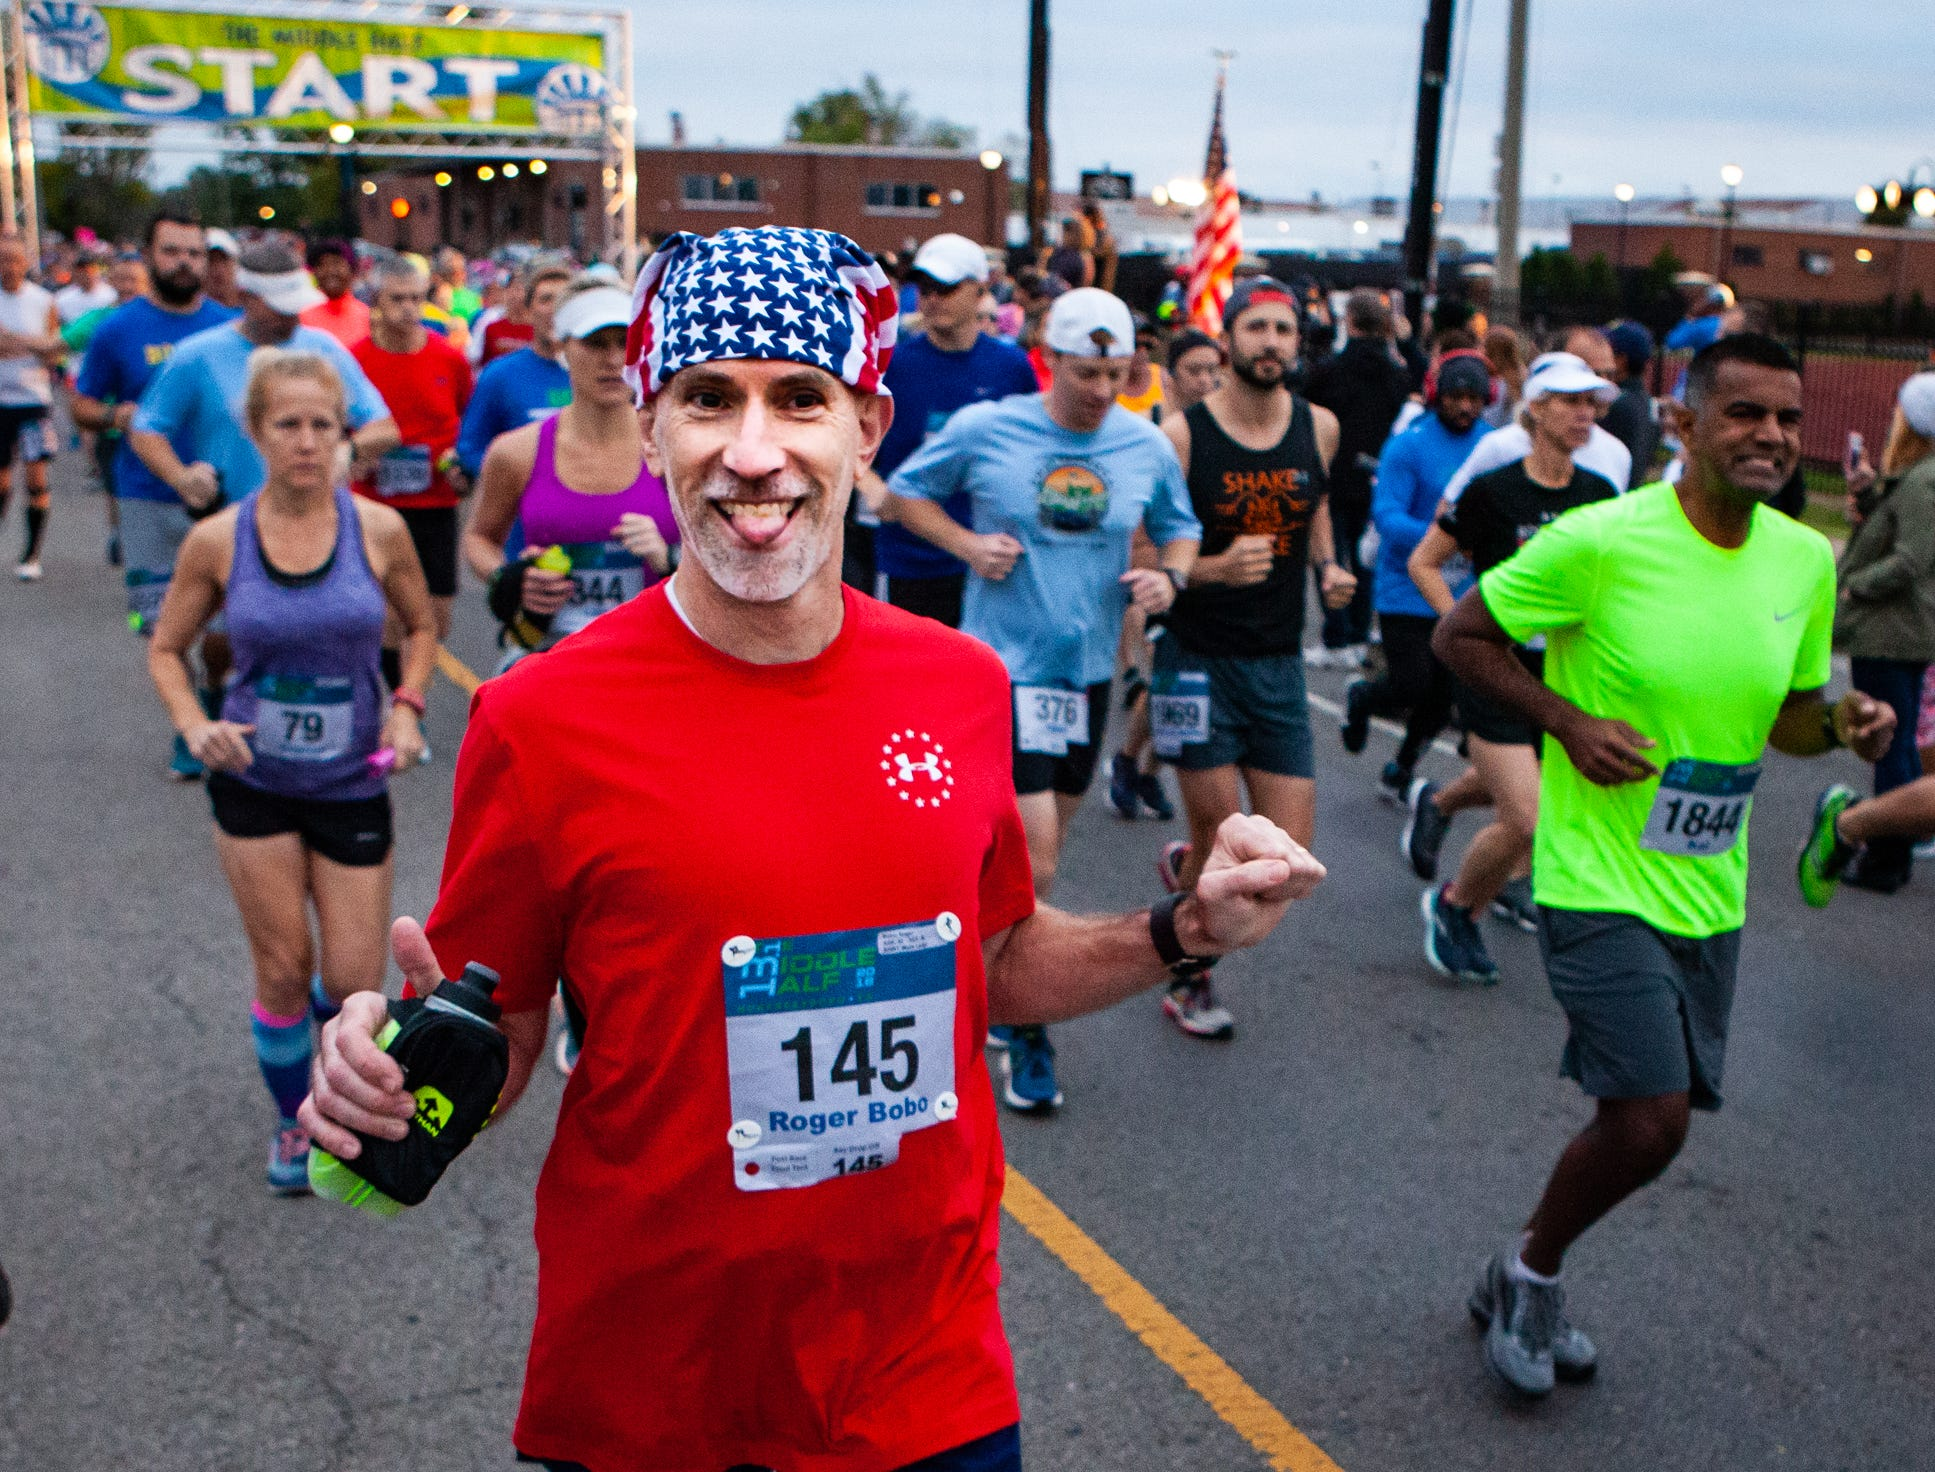 The 12th annual Murfreesboro Half Marathon, also known as The Middle Half, was held Saturday, Oct. 13, 2018